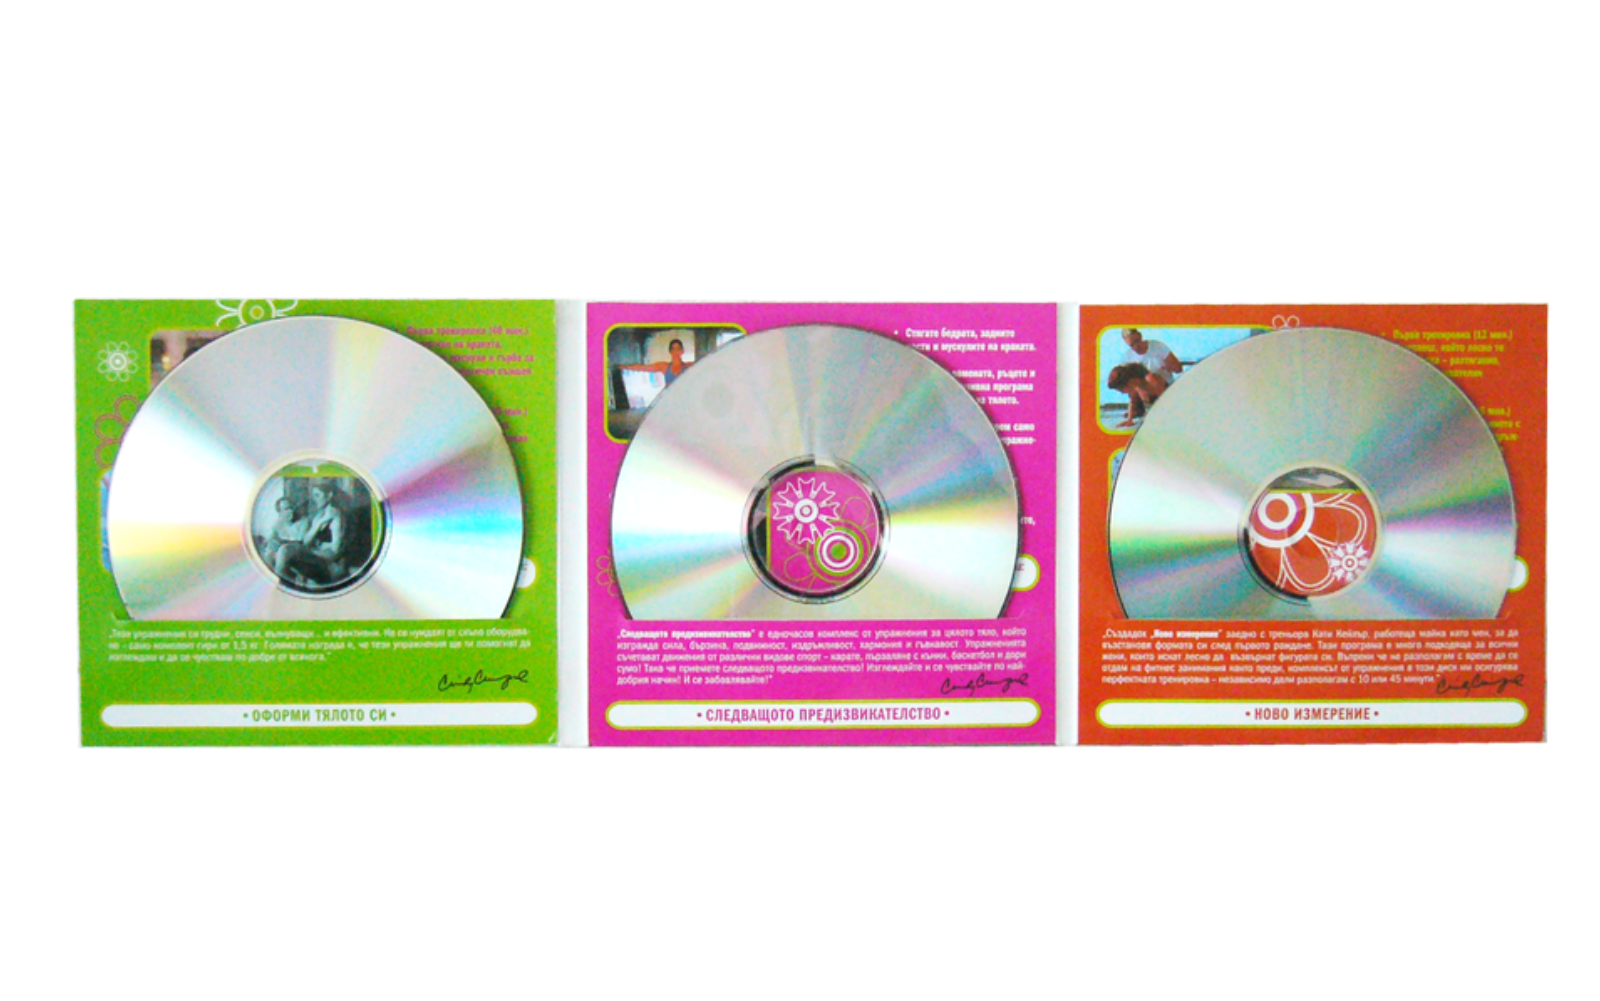 CD Digifile 6 Pages 3 CDs